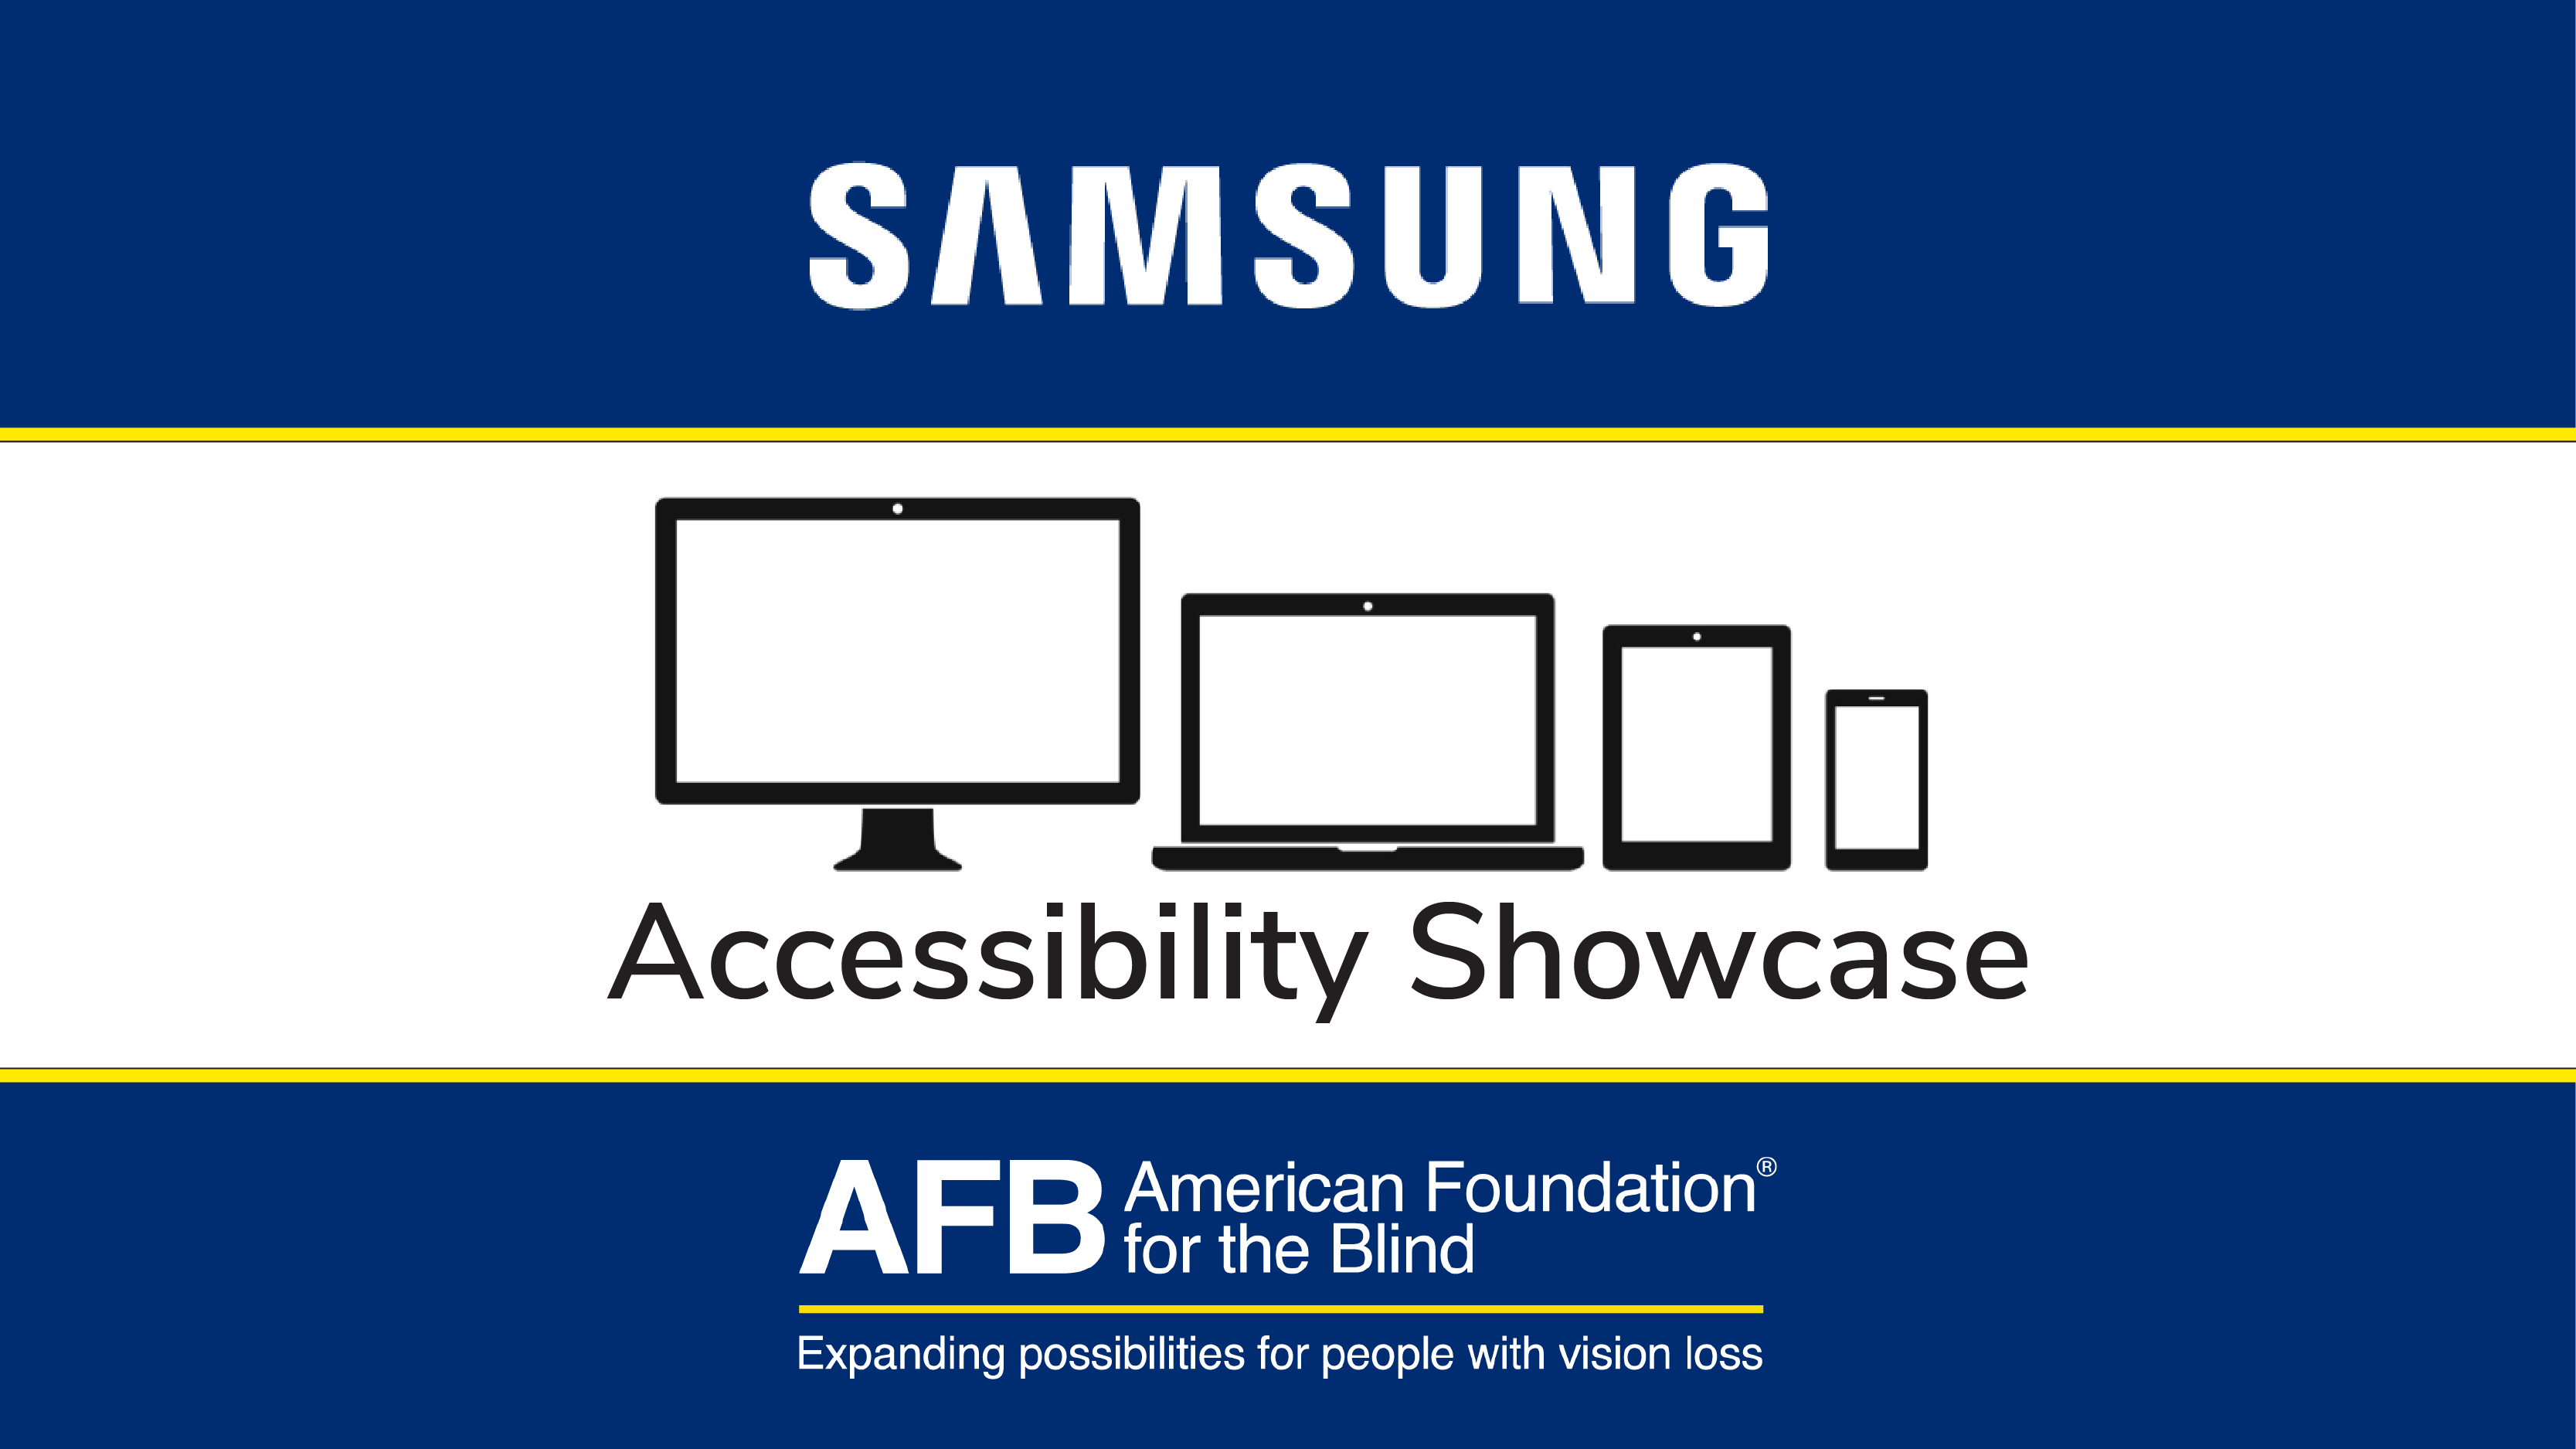 Samsung Accessibility Showcase presented by the American Foundation for the Blind